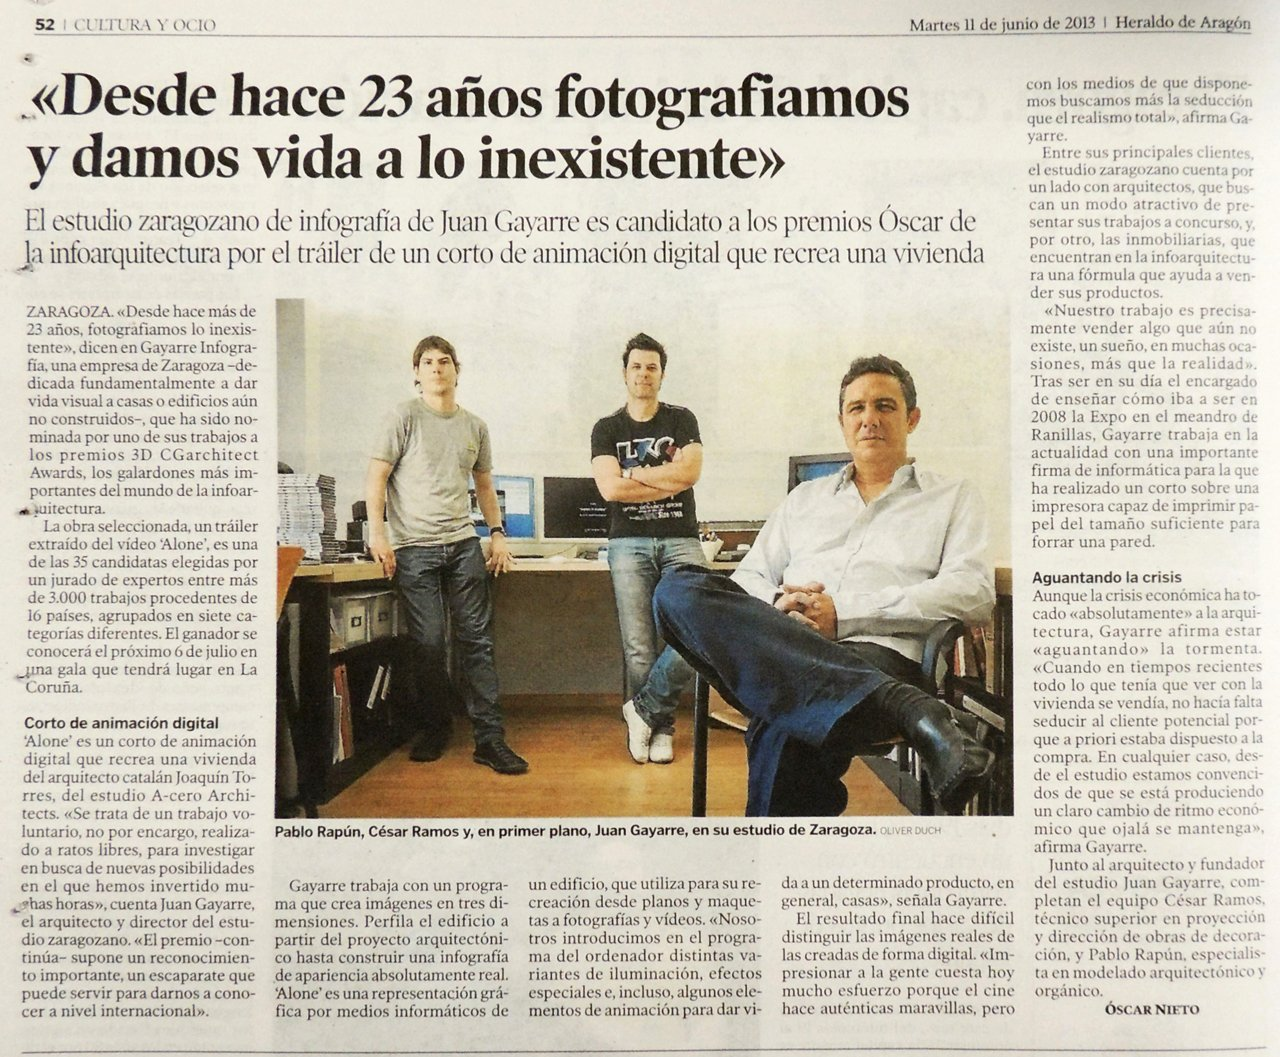 """Interview at the newspaper Heraldo de Aragon talking about """"alone"""" by GAYARRE infografia"""